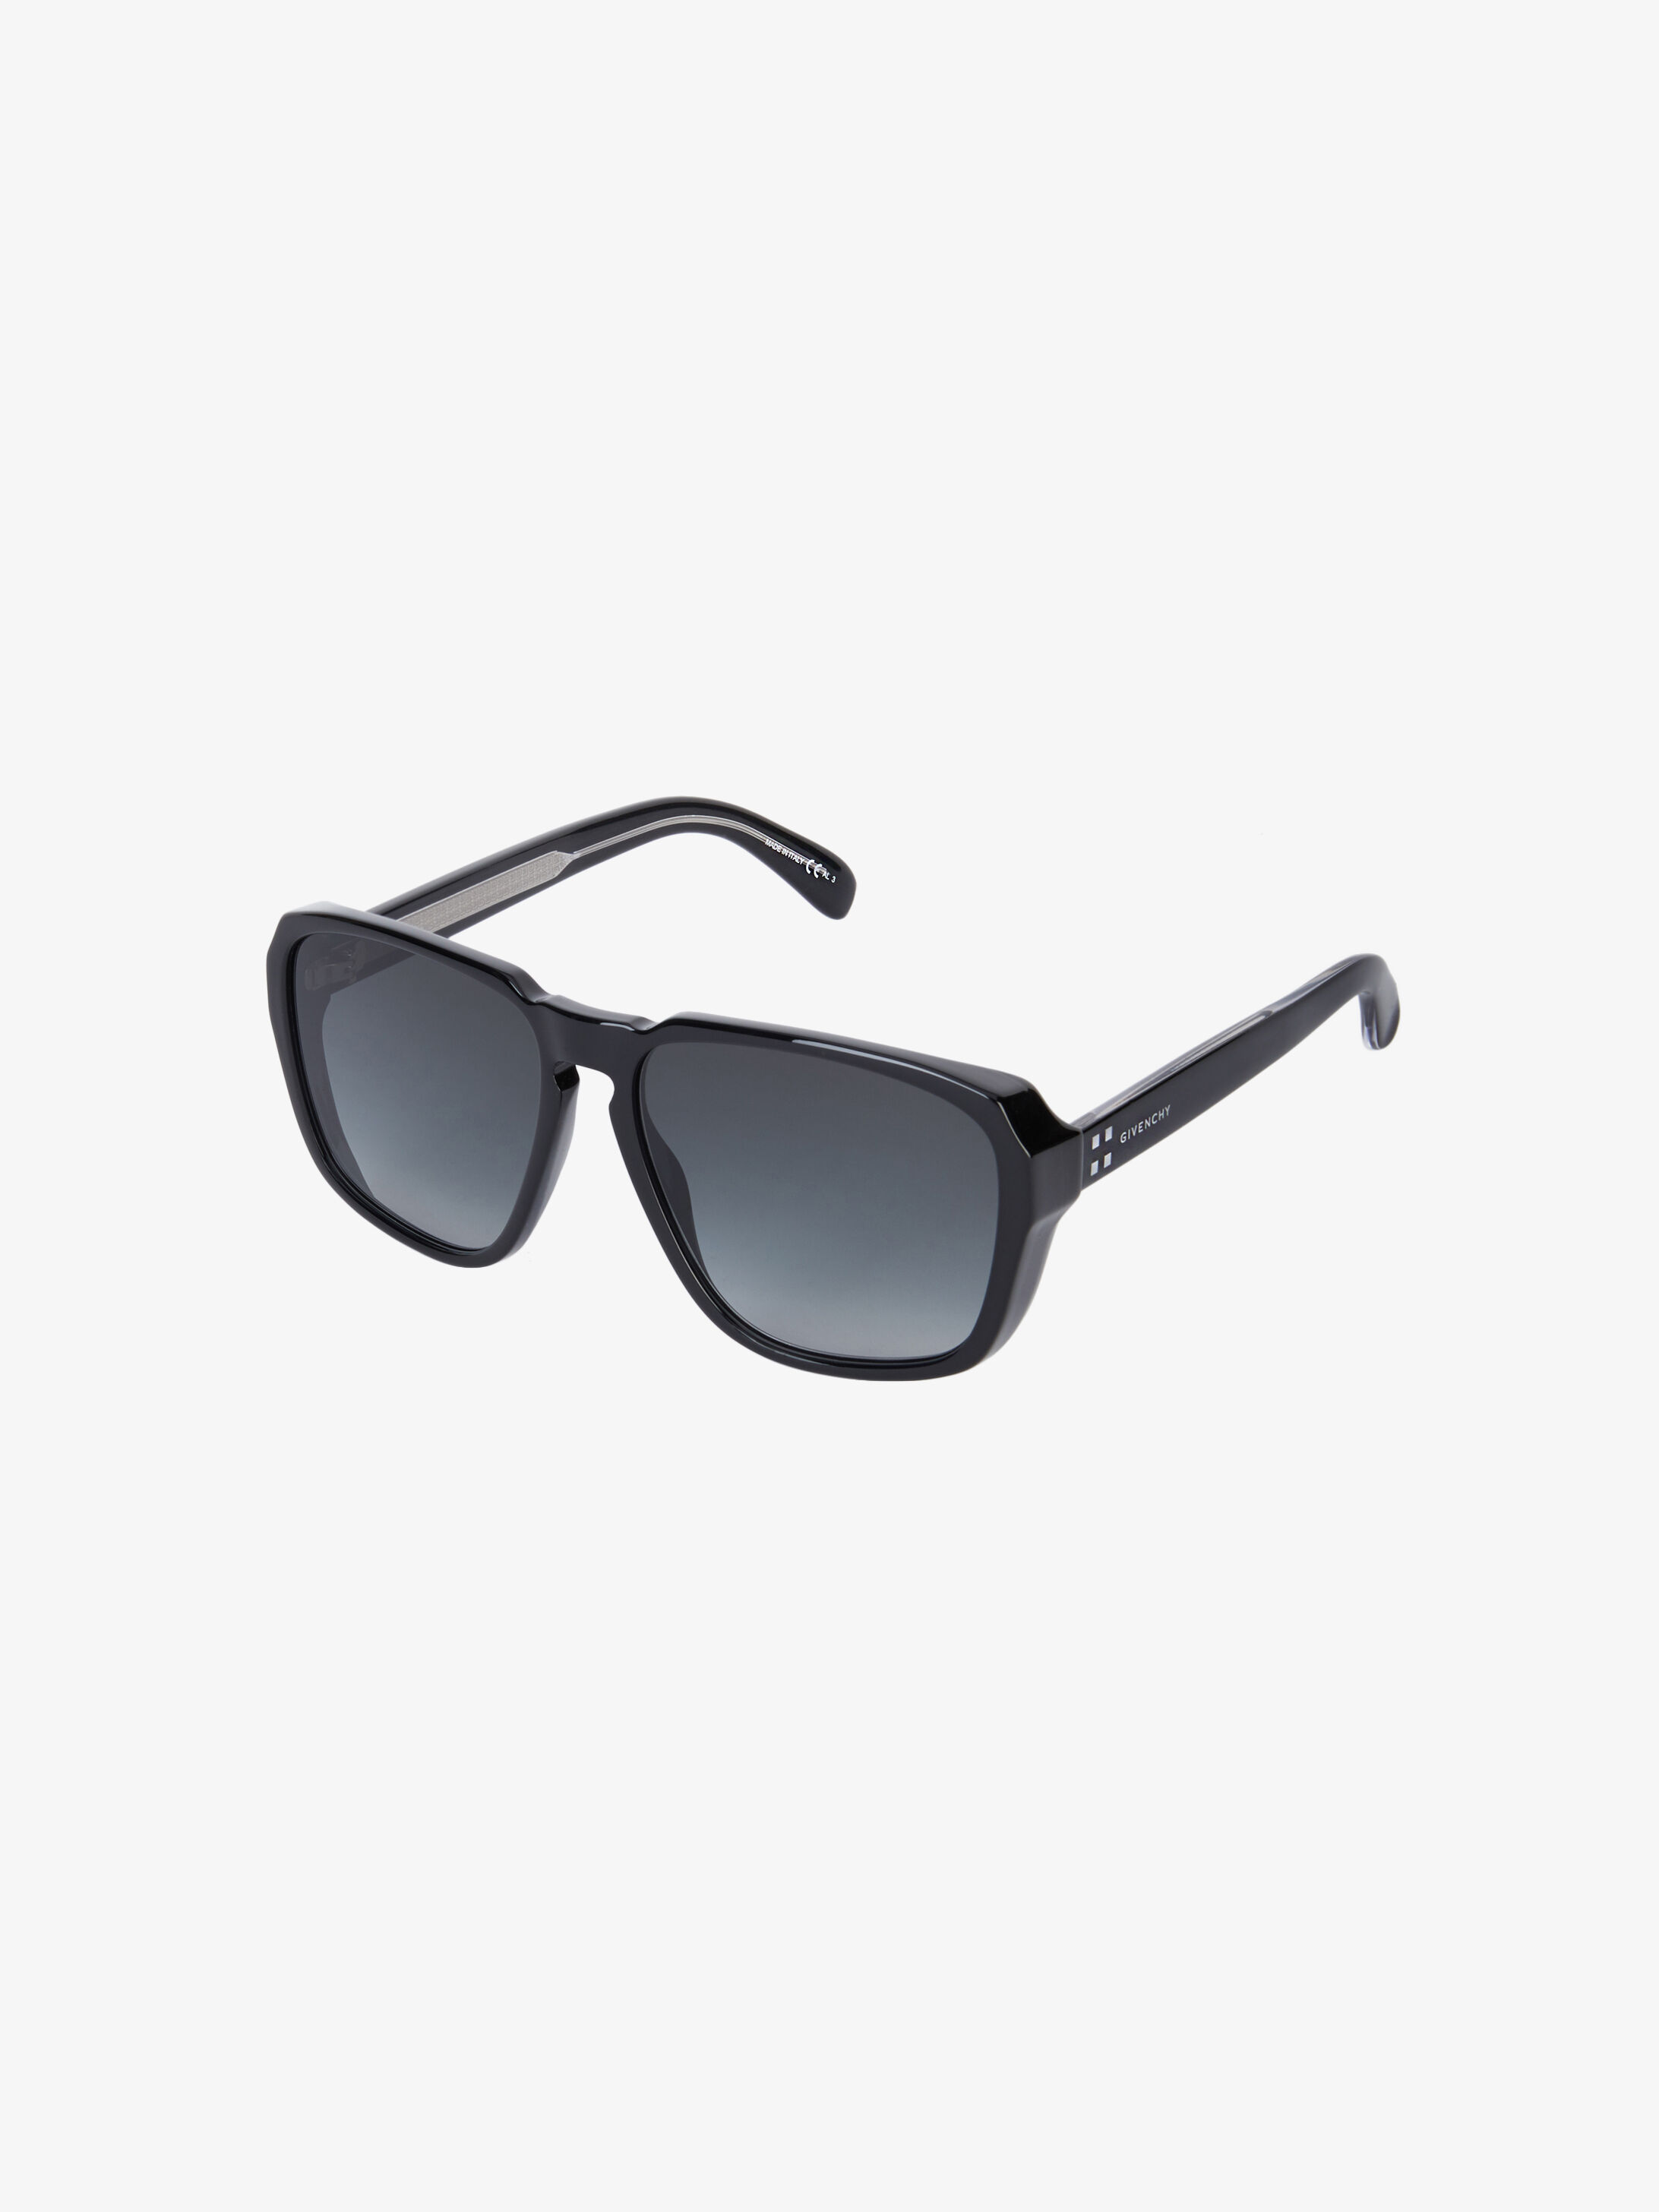 e1c684c264e5 Women's Sunglasses collection by Givenchy. | GIVENCHY Paris